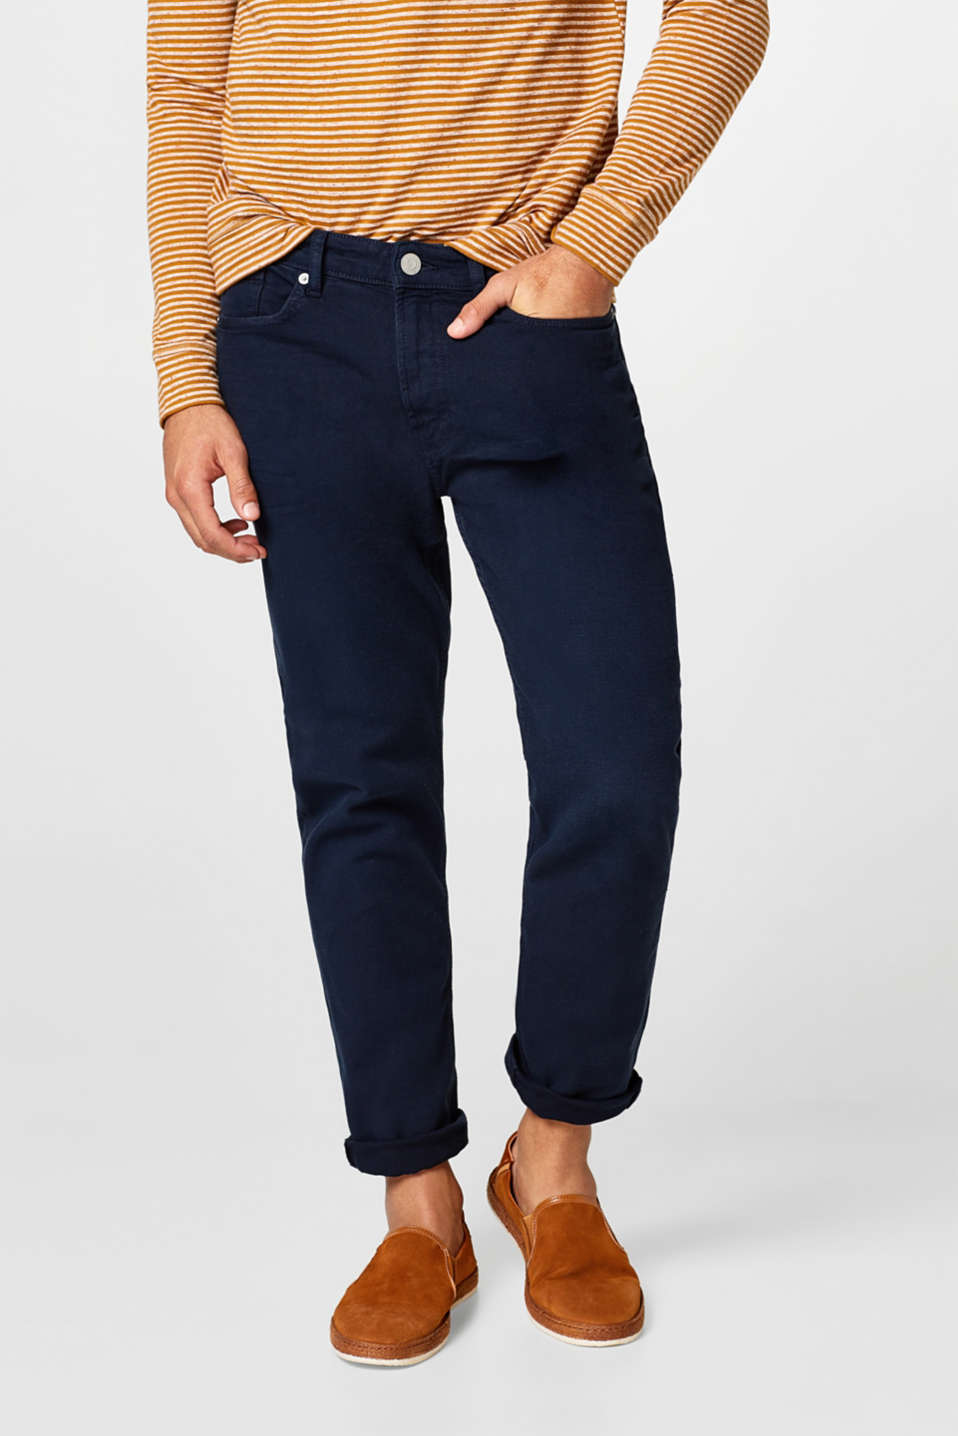 Esprit - Stretch jeans with a grainy texture